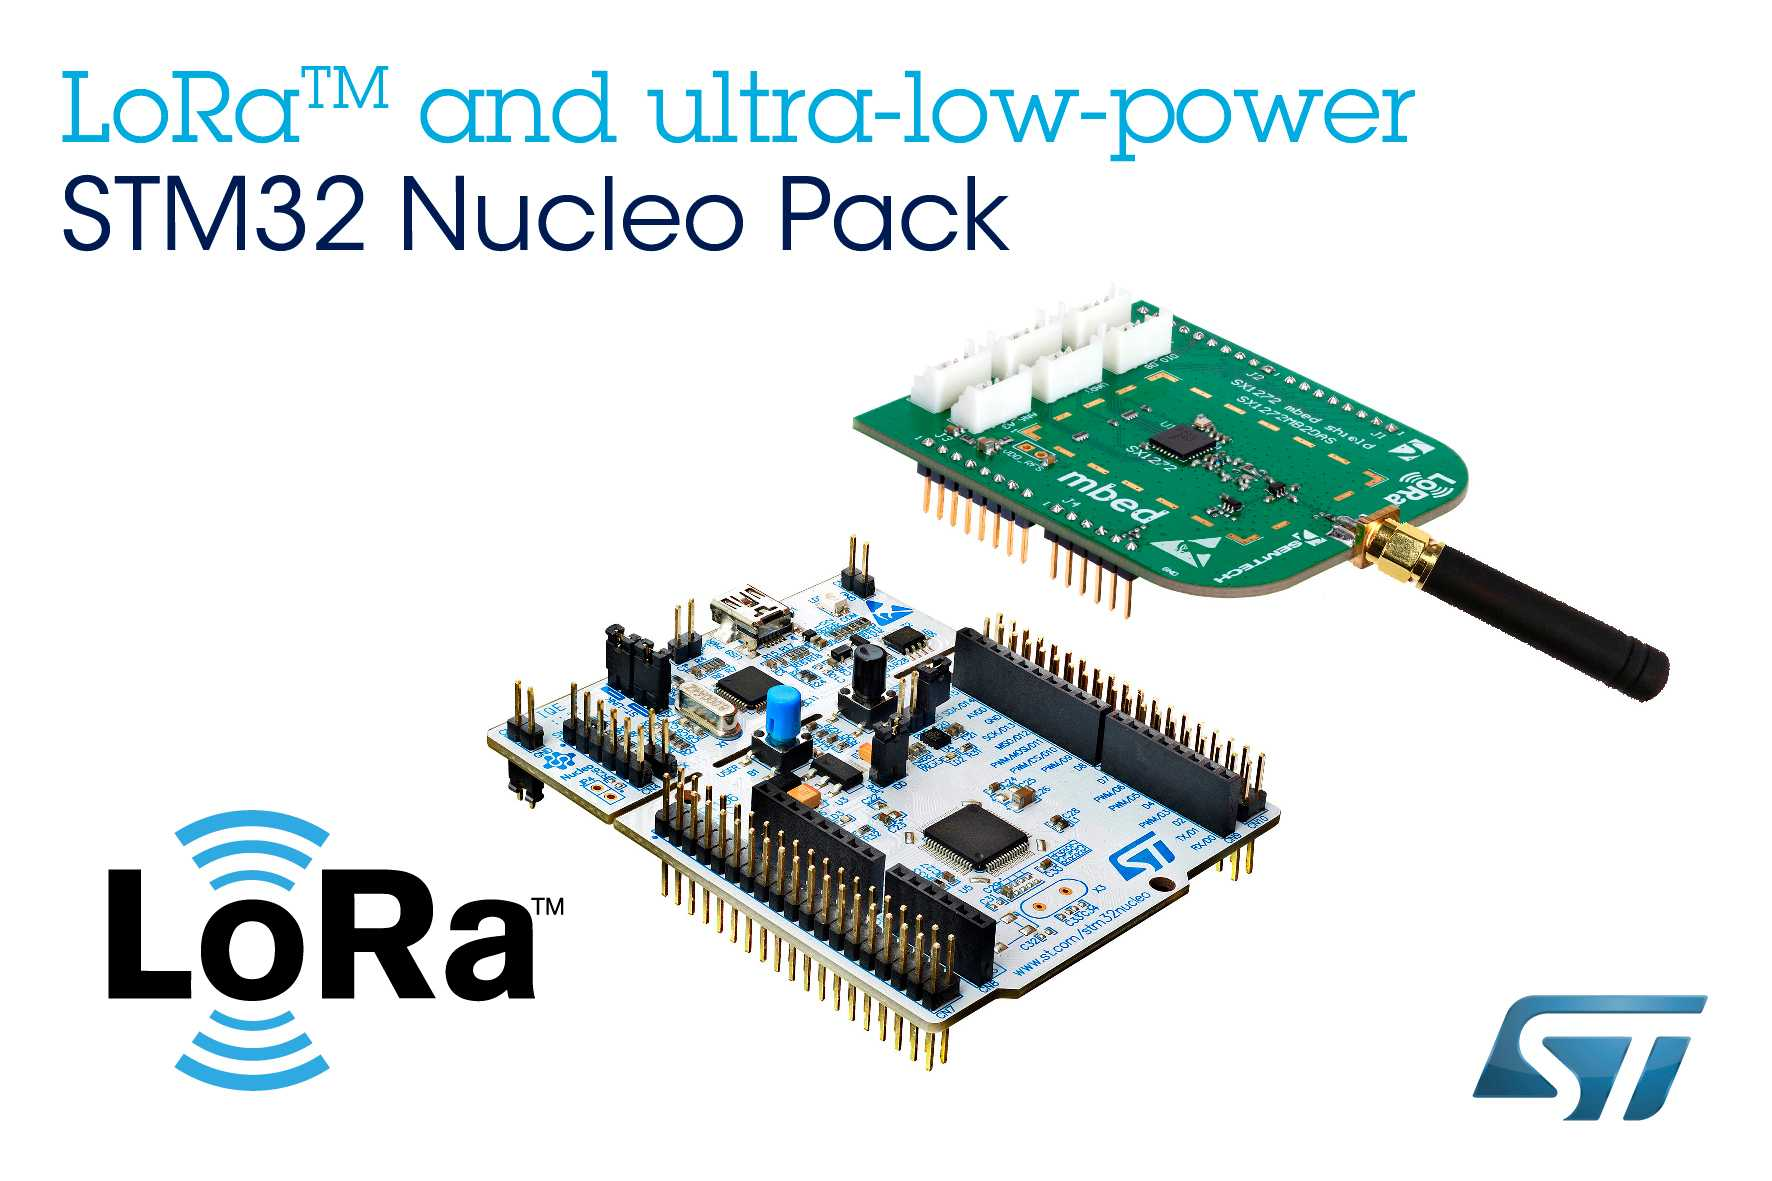 LoRa and ultra-low-power STM32 Nucleo Pack from STMicroelectronics